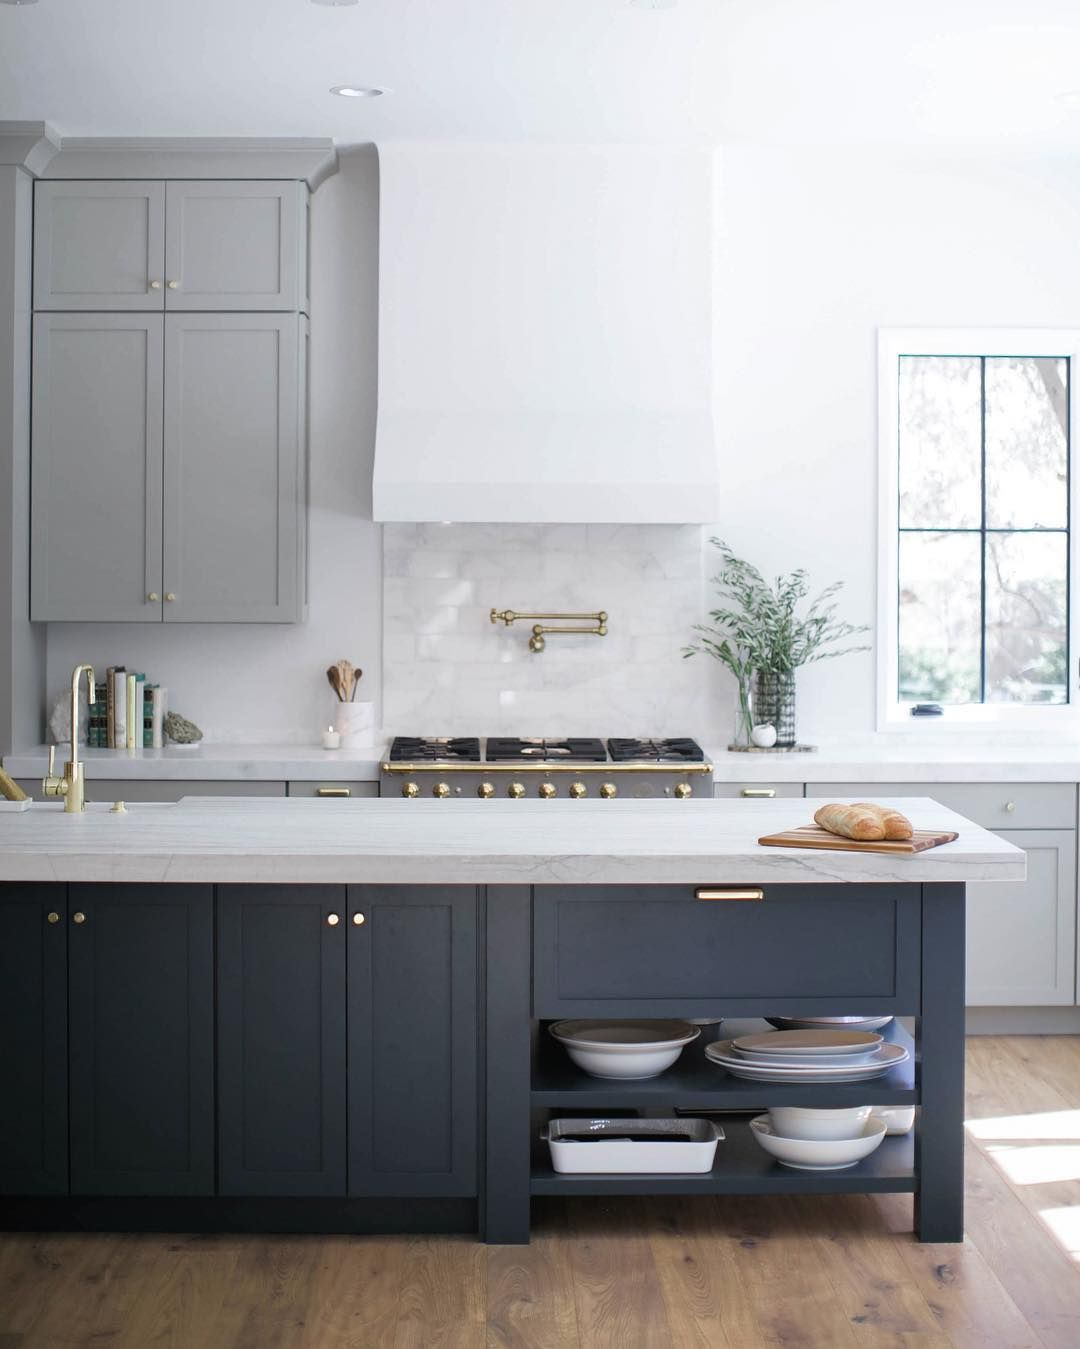 c h e r h o u s e on instagram happy friday we ve got some plans cookin for a new kitchen on r kitchen cabinets id=25495